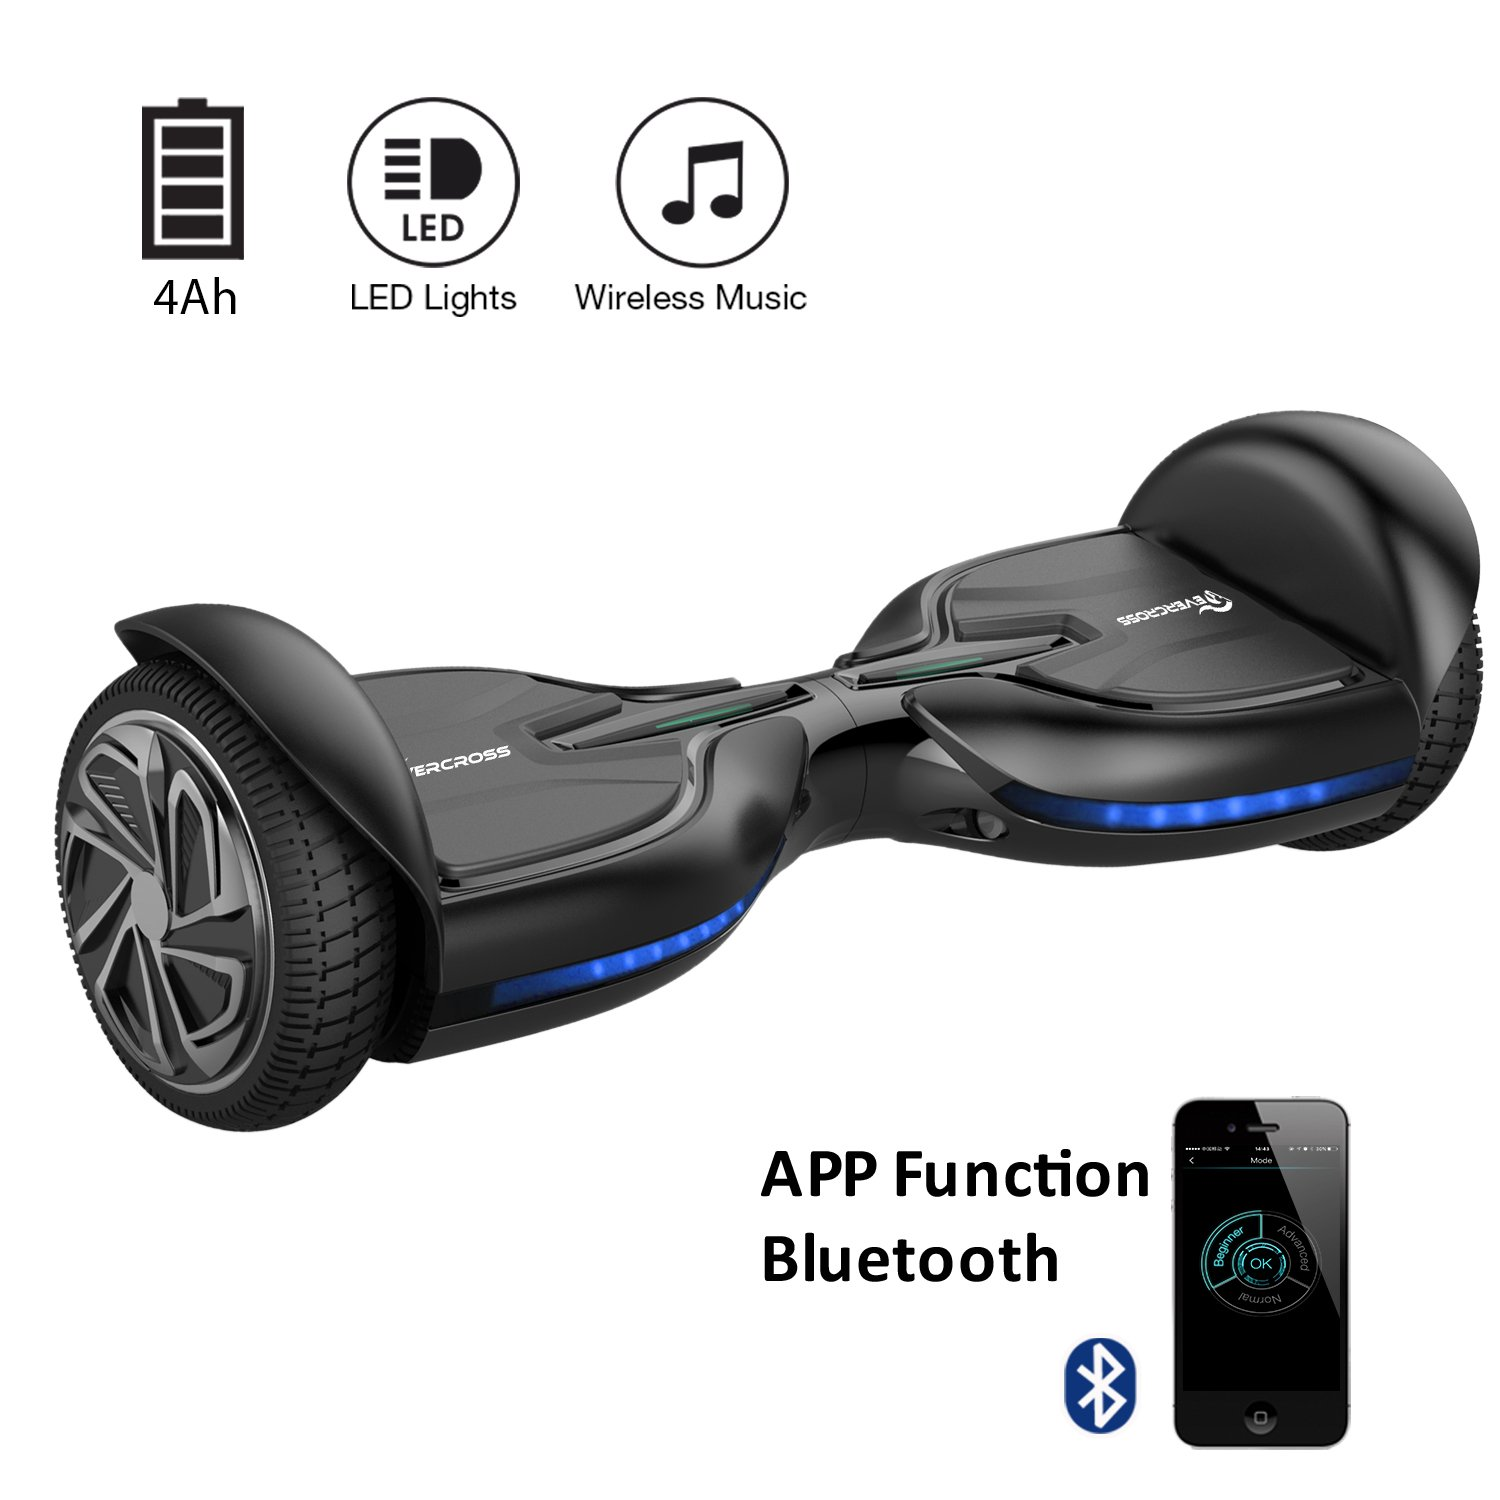 EVERCROSS Diablo Hoverboard Patinete Eléctrico Scooter talla  Bluetooth Negro